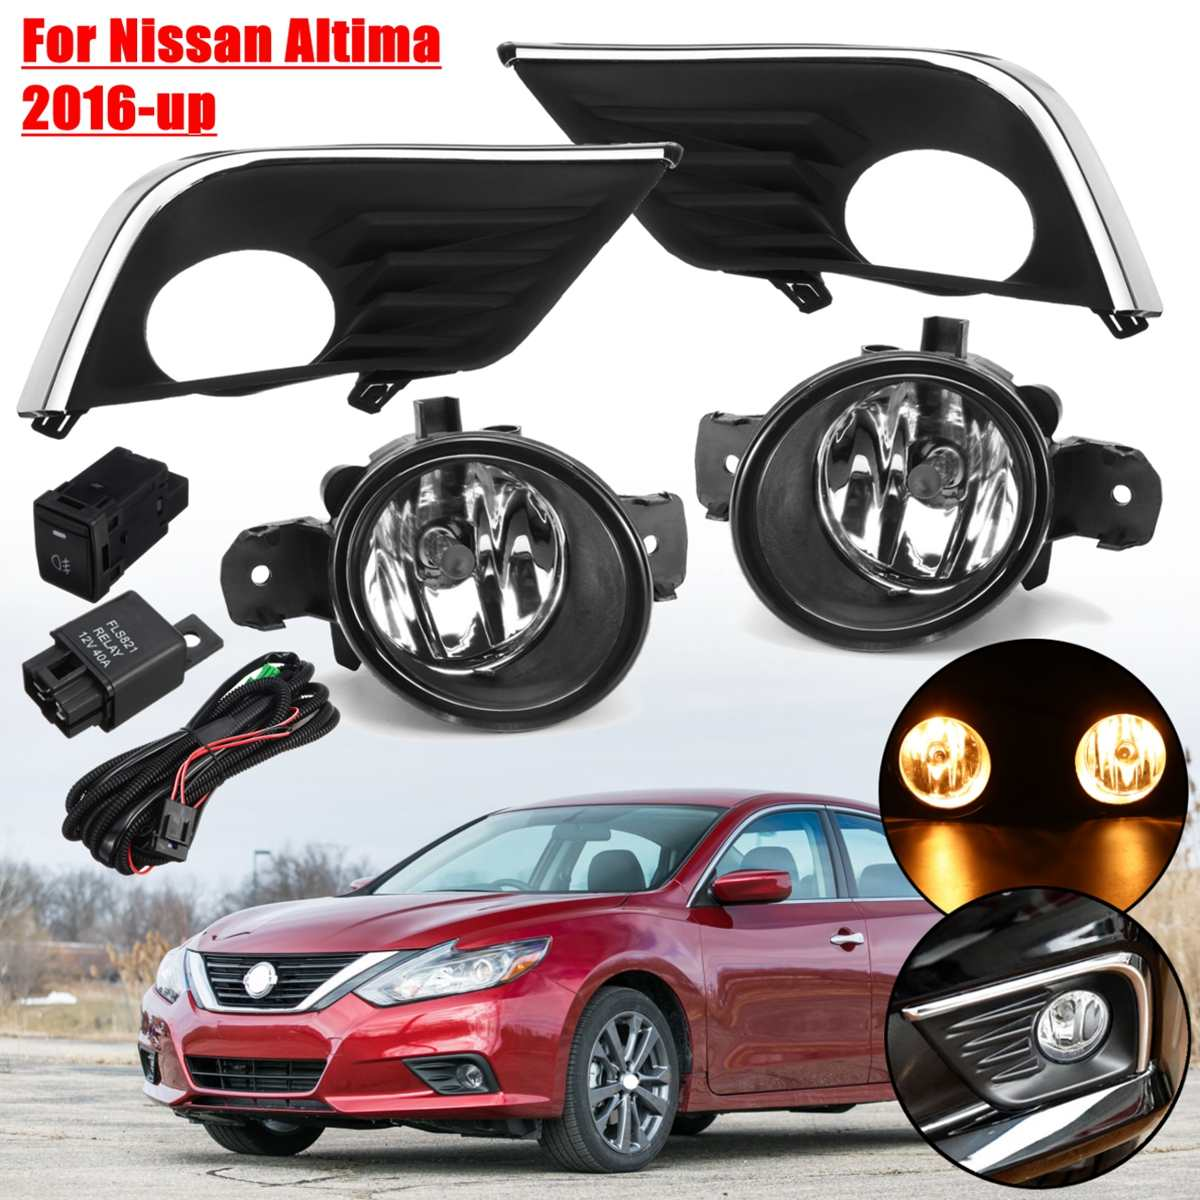 For Nissan Altima 2016 2017 2018 1 Pair 12V 55W H11 Car Front Fog Lights And Cover With Wire Switch Lamp Cover Frame Replacement